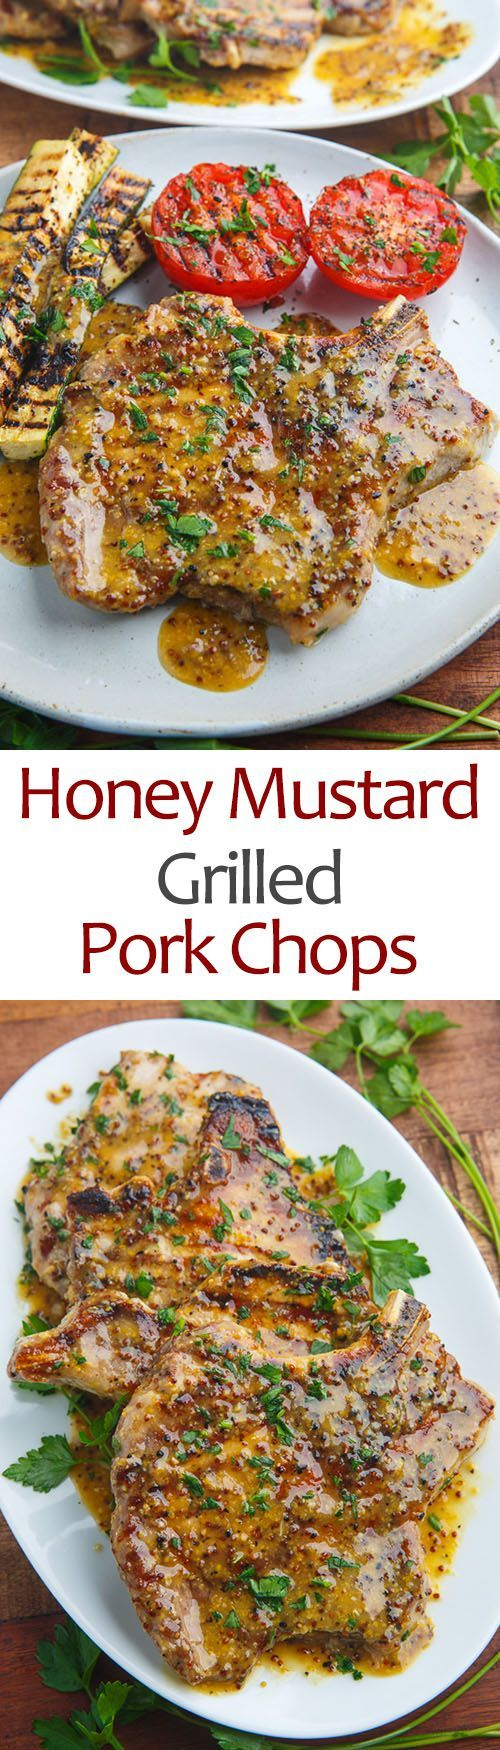 Honey Mustard Grilled Pork Chops More